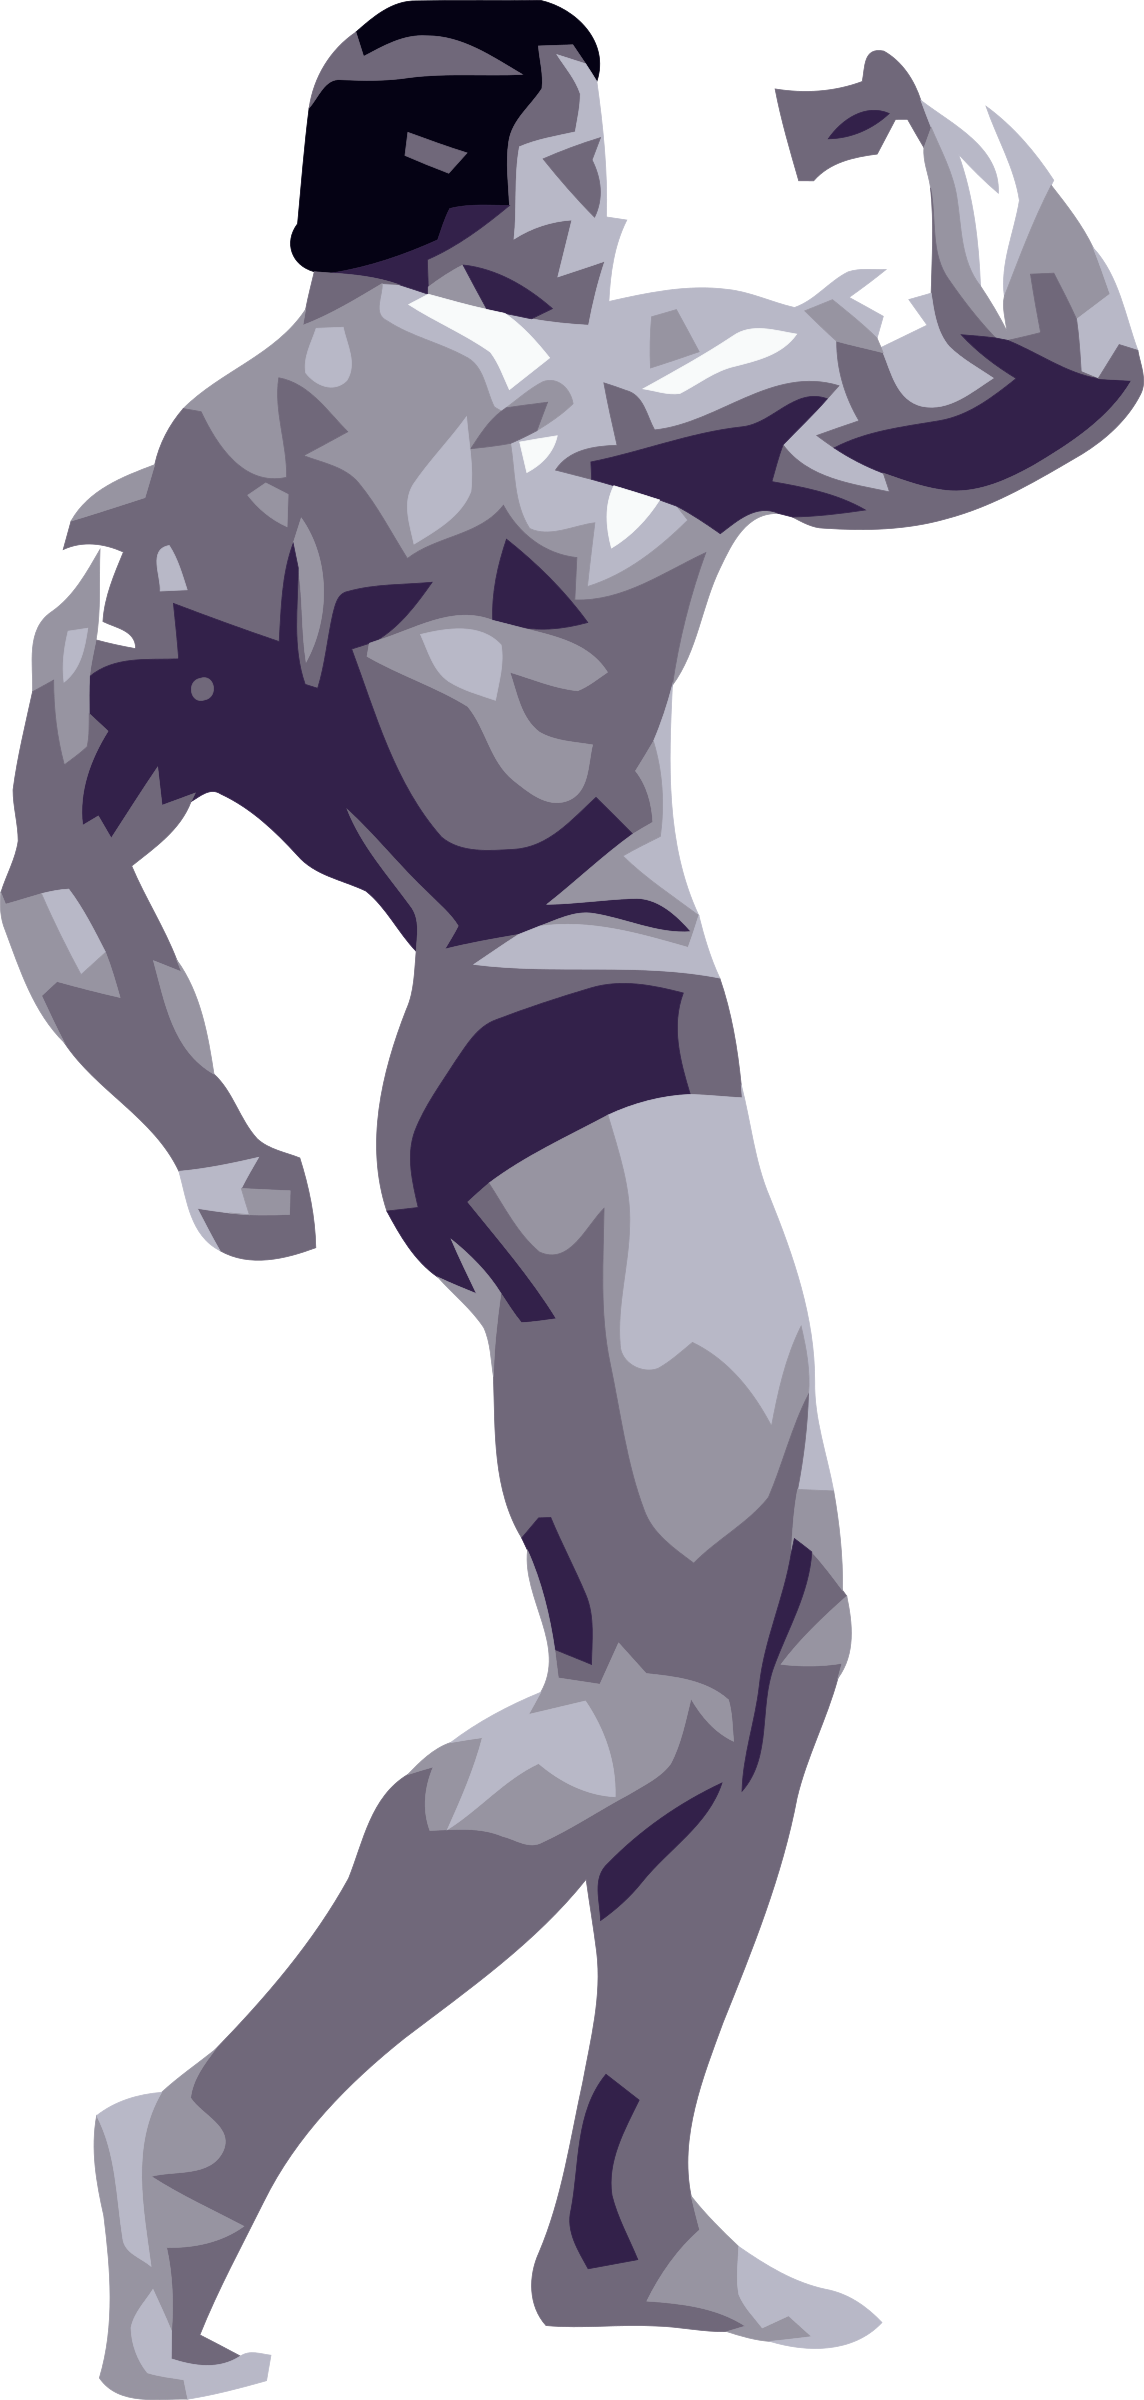 Body Builder Vector Clipart Image Free Stock Photo